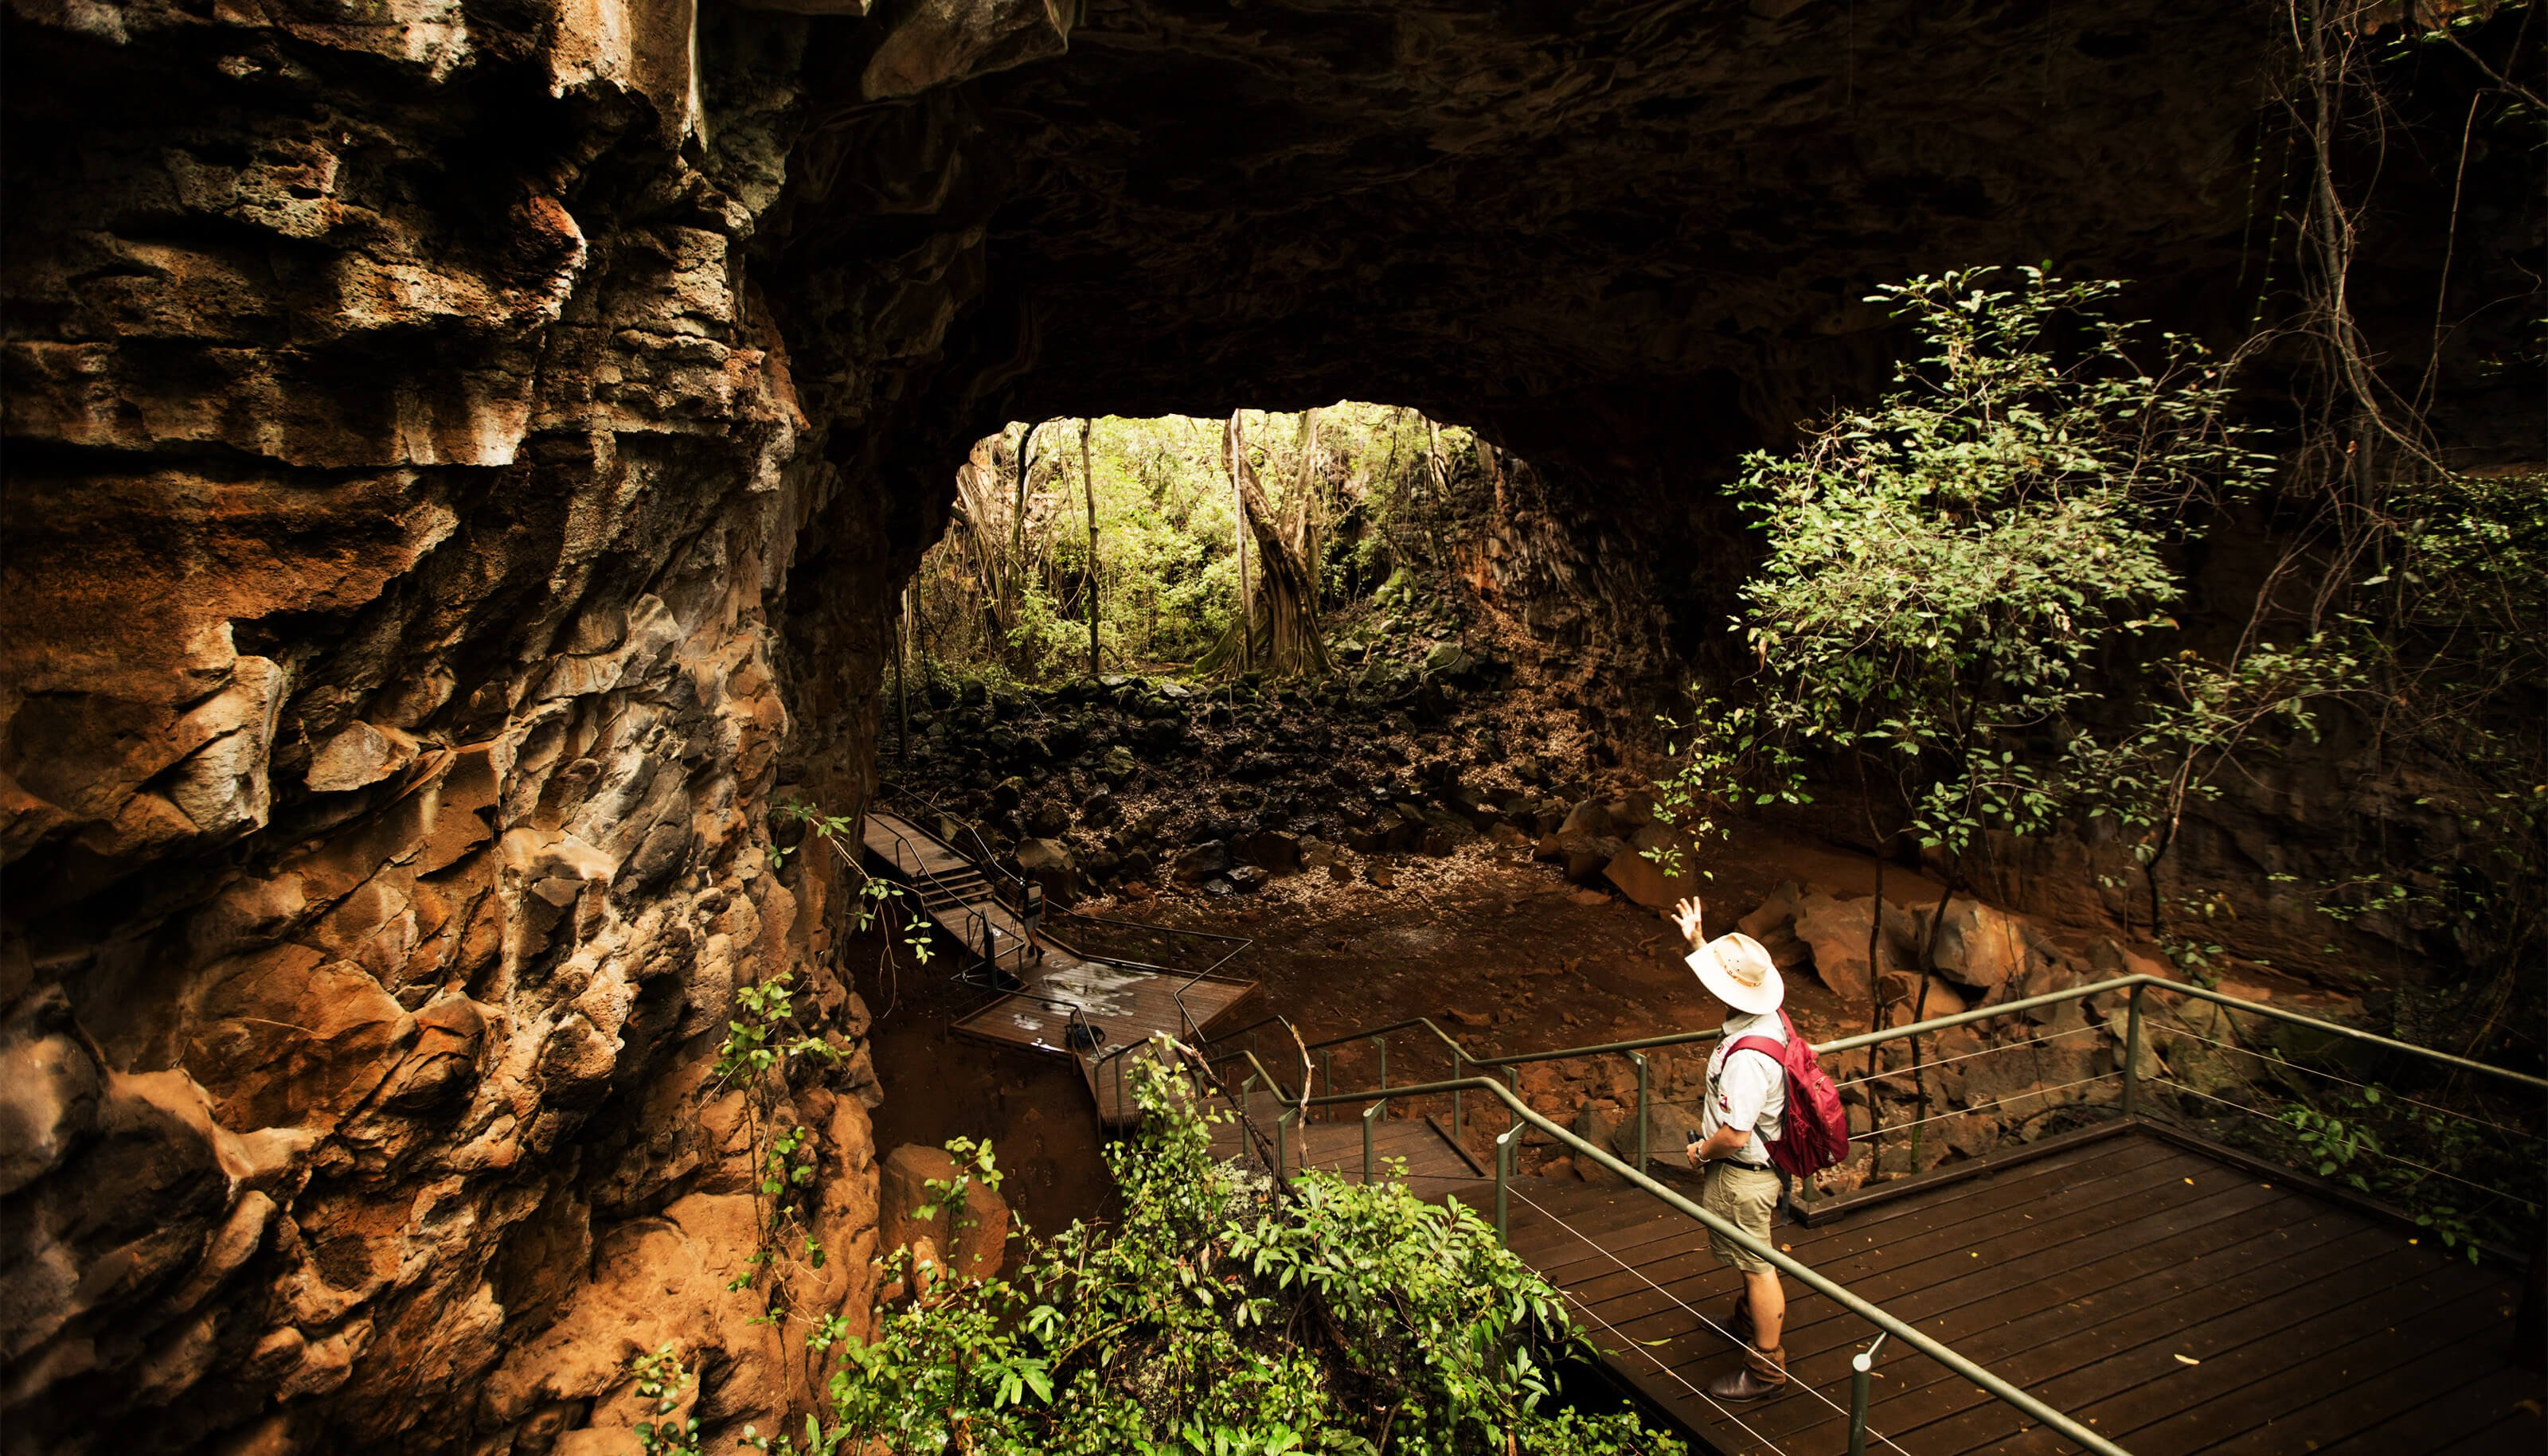 guided tour of the lava tubes at undara experience